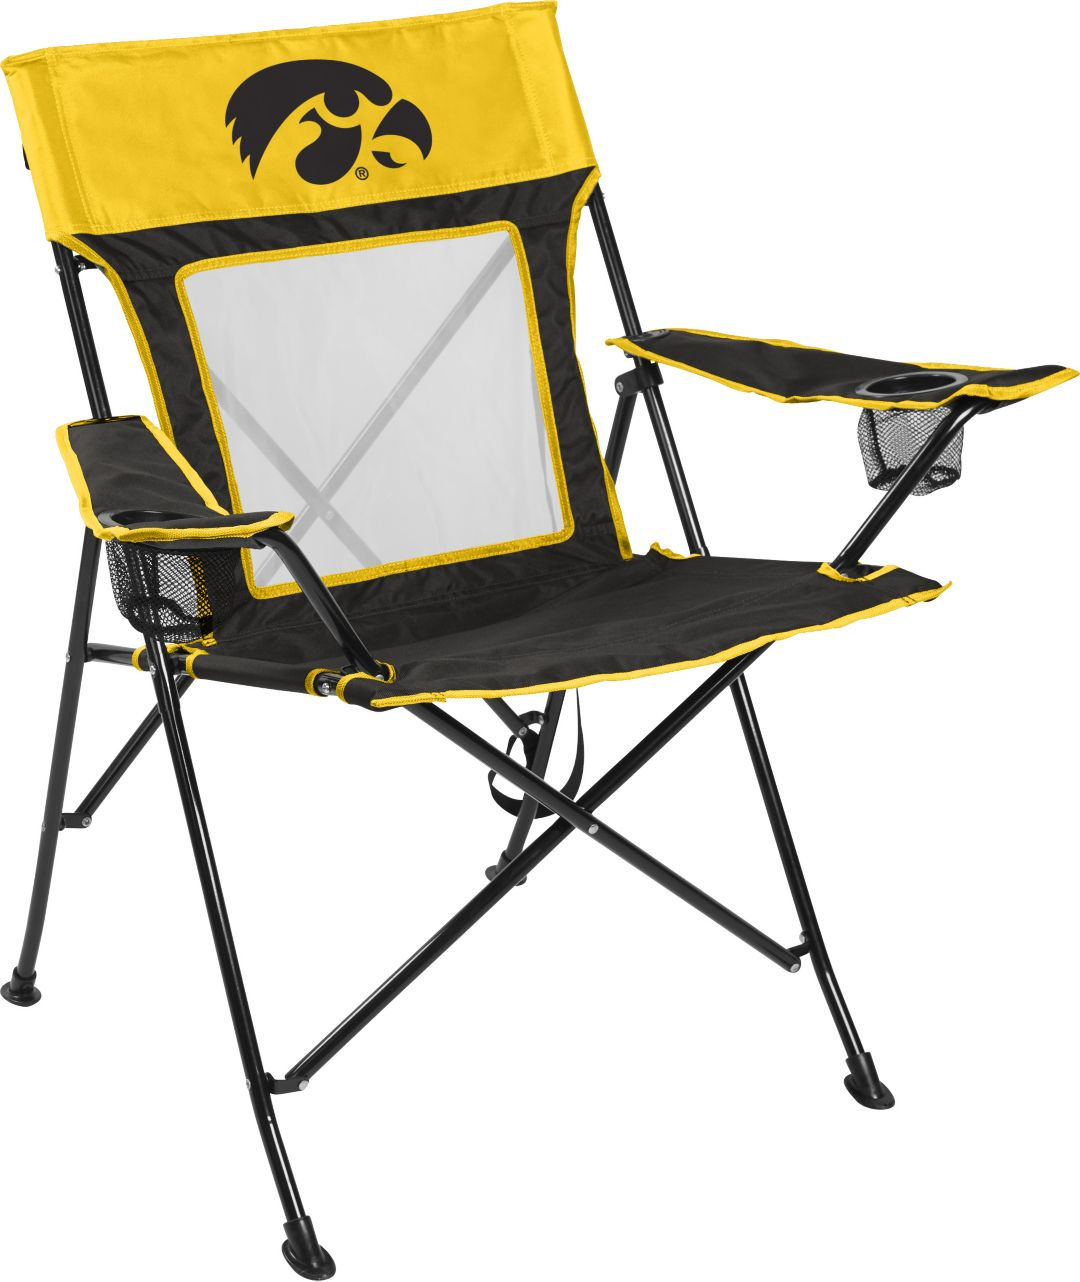 Astounding Rawlings Iowa Hawkeyes Game Changer Chair Beatyapartments Chair Design Images Beatyapartmentscom